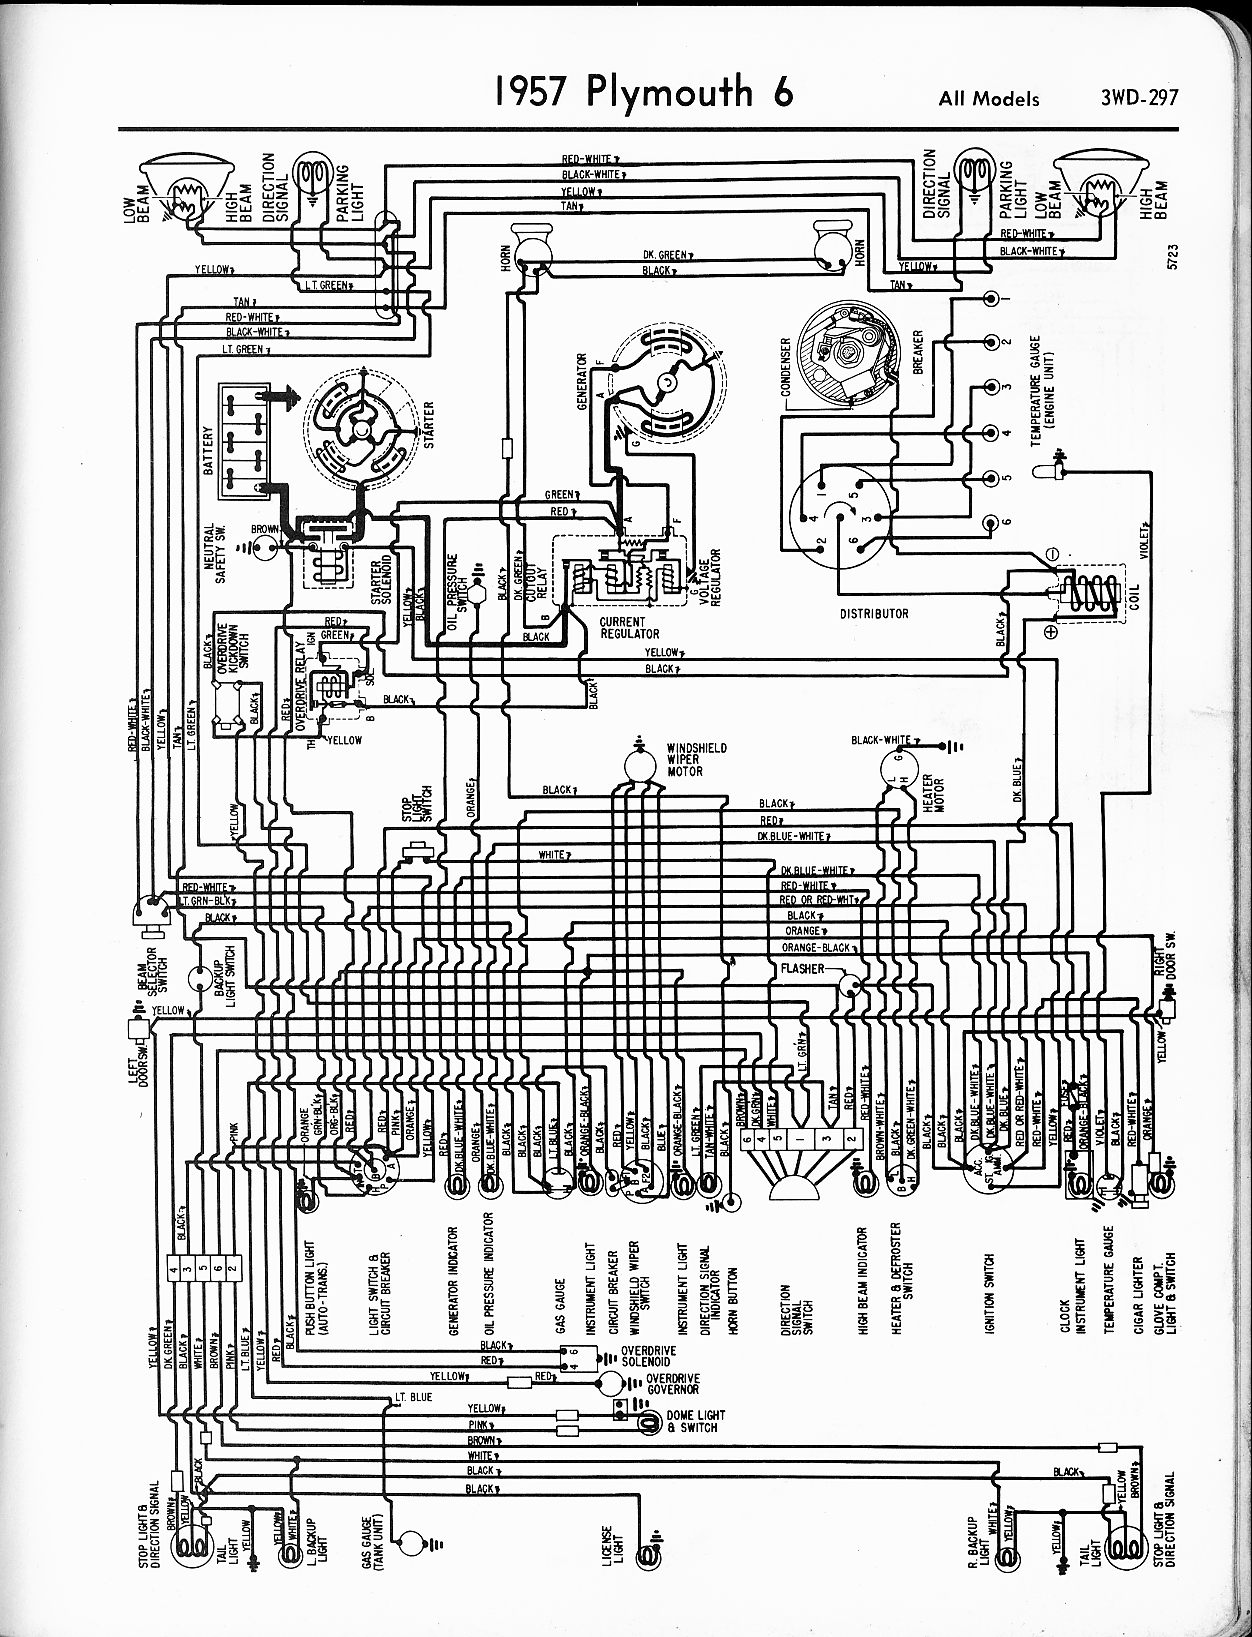 wiring diagrams free weebly download diagram schematic wiring rh 2 6 10 philoxenia restaurant de